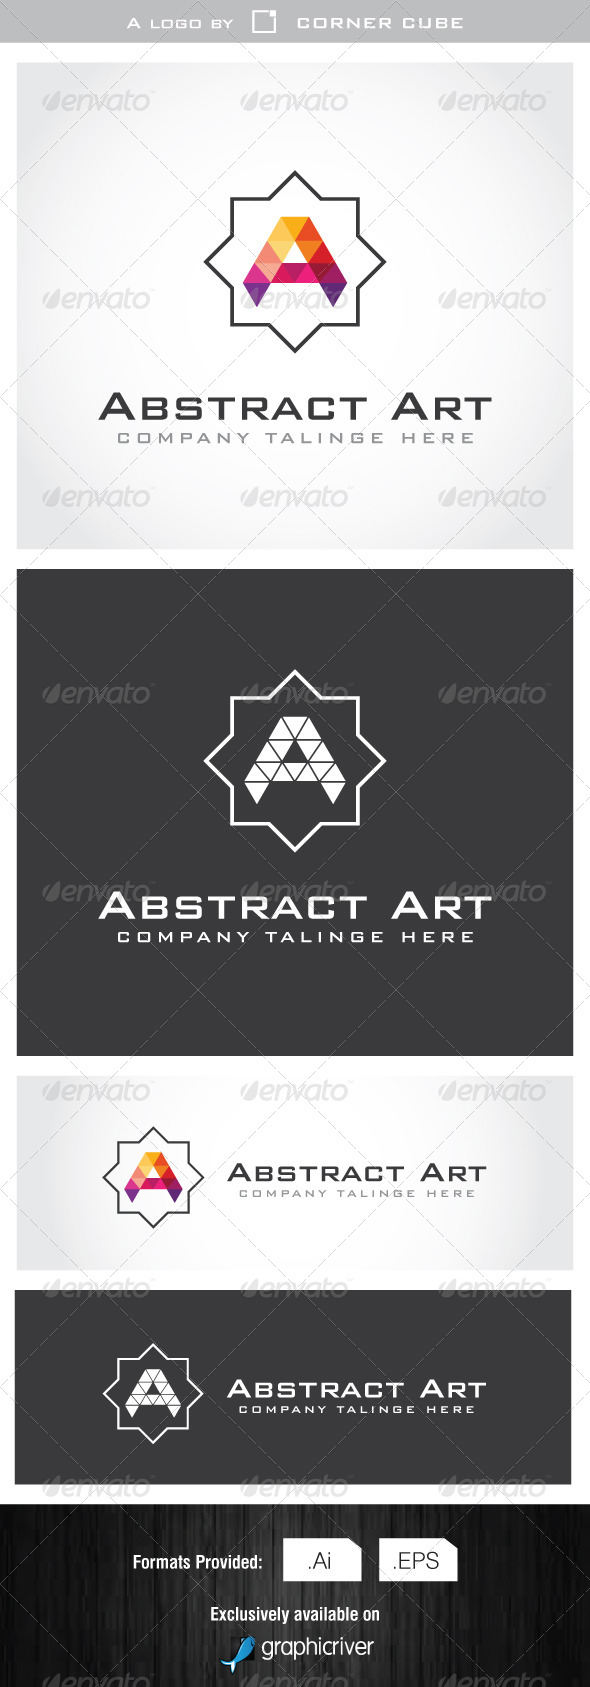 GraphicRiver Abstract Art Logo 7002616